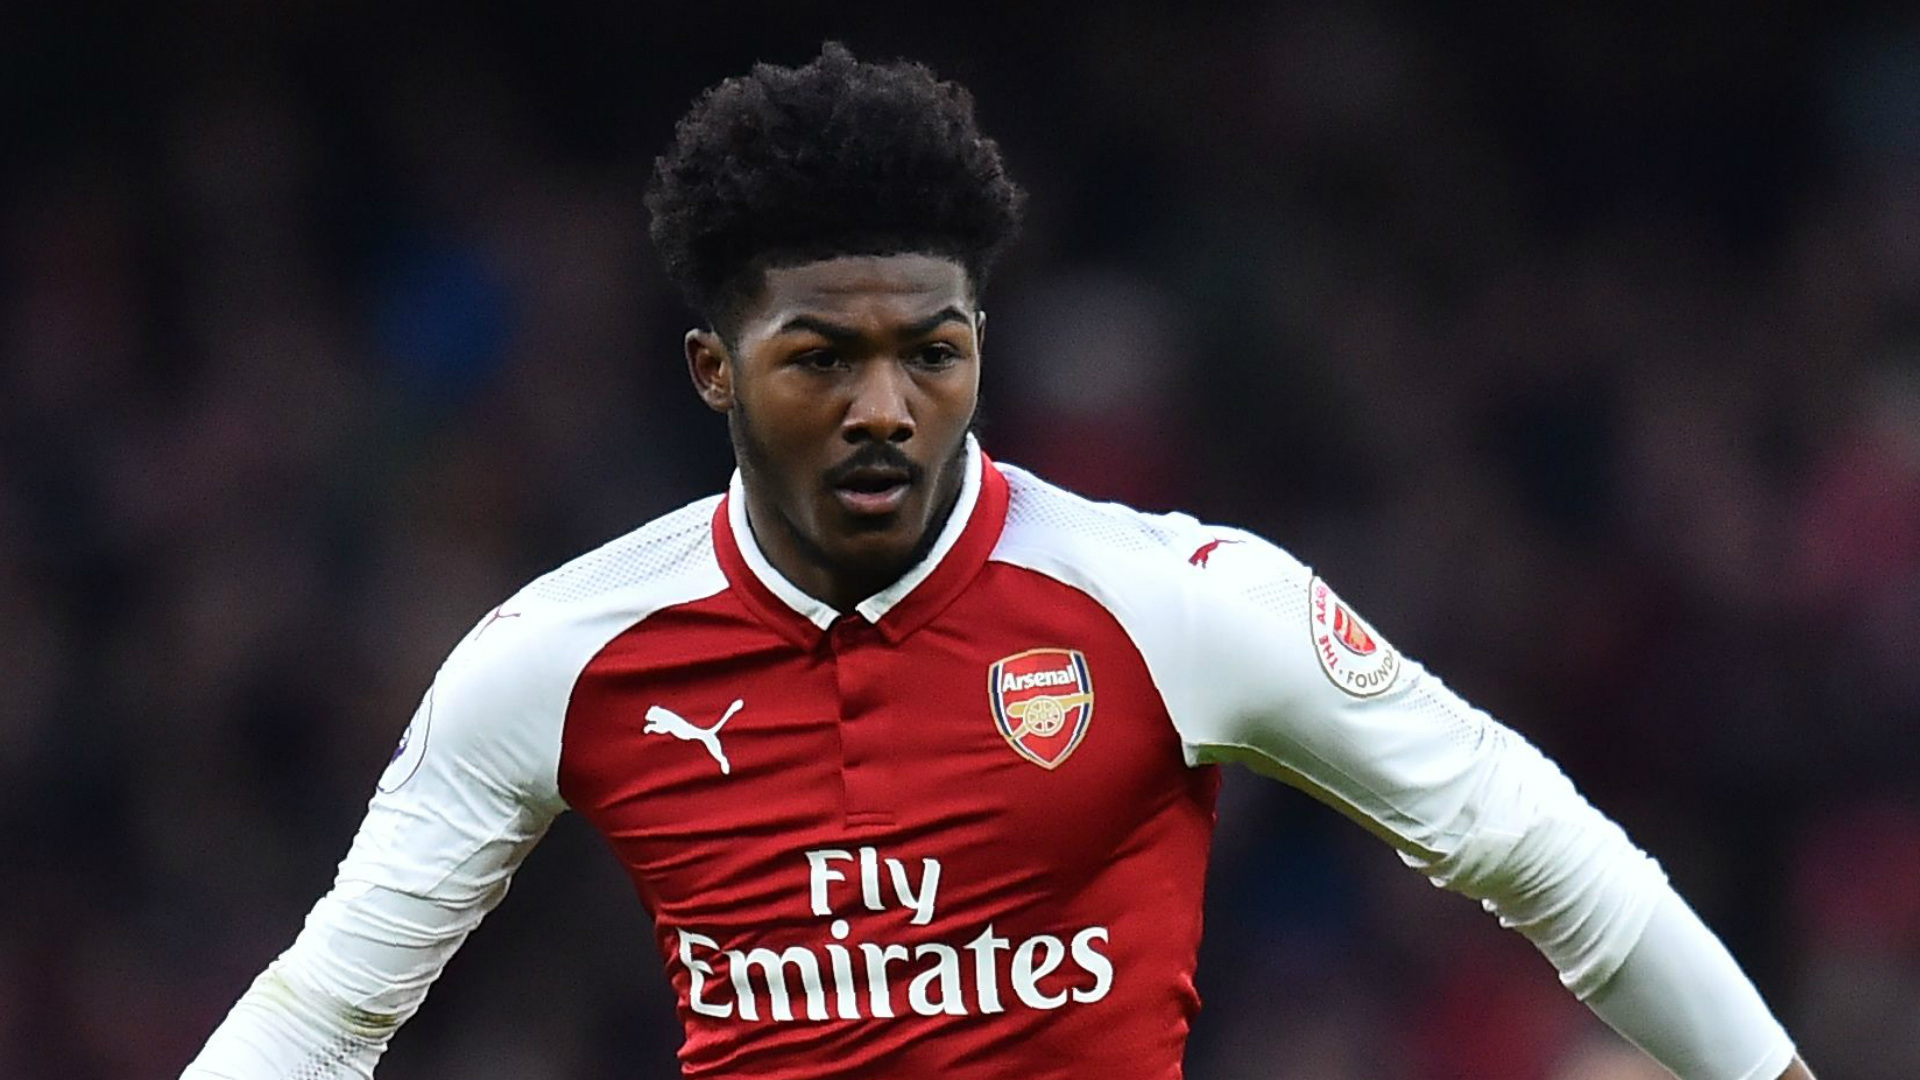 Ainsley Maitland-Niles Arsenal 2017